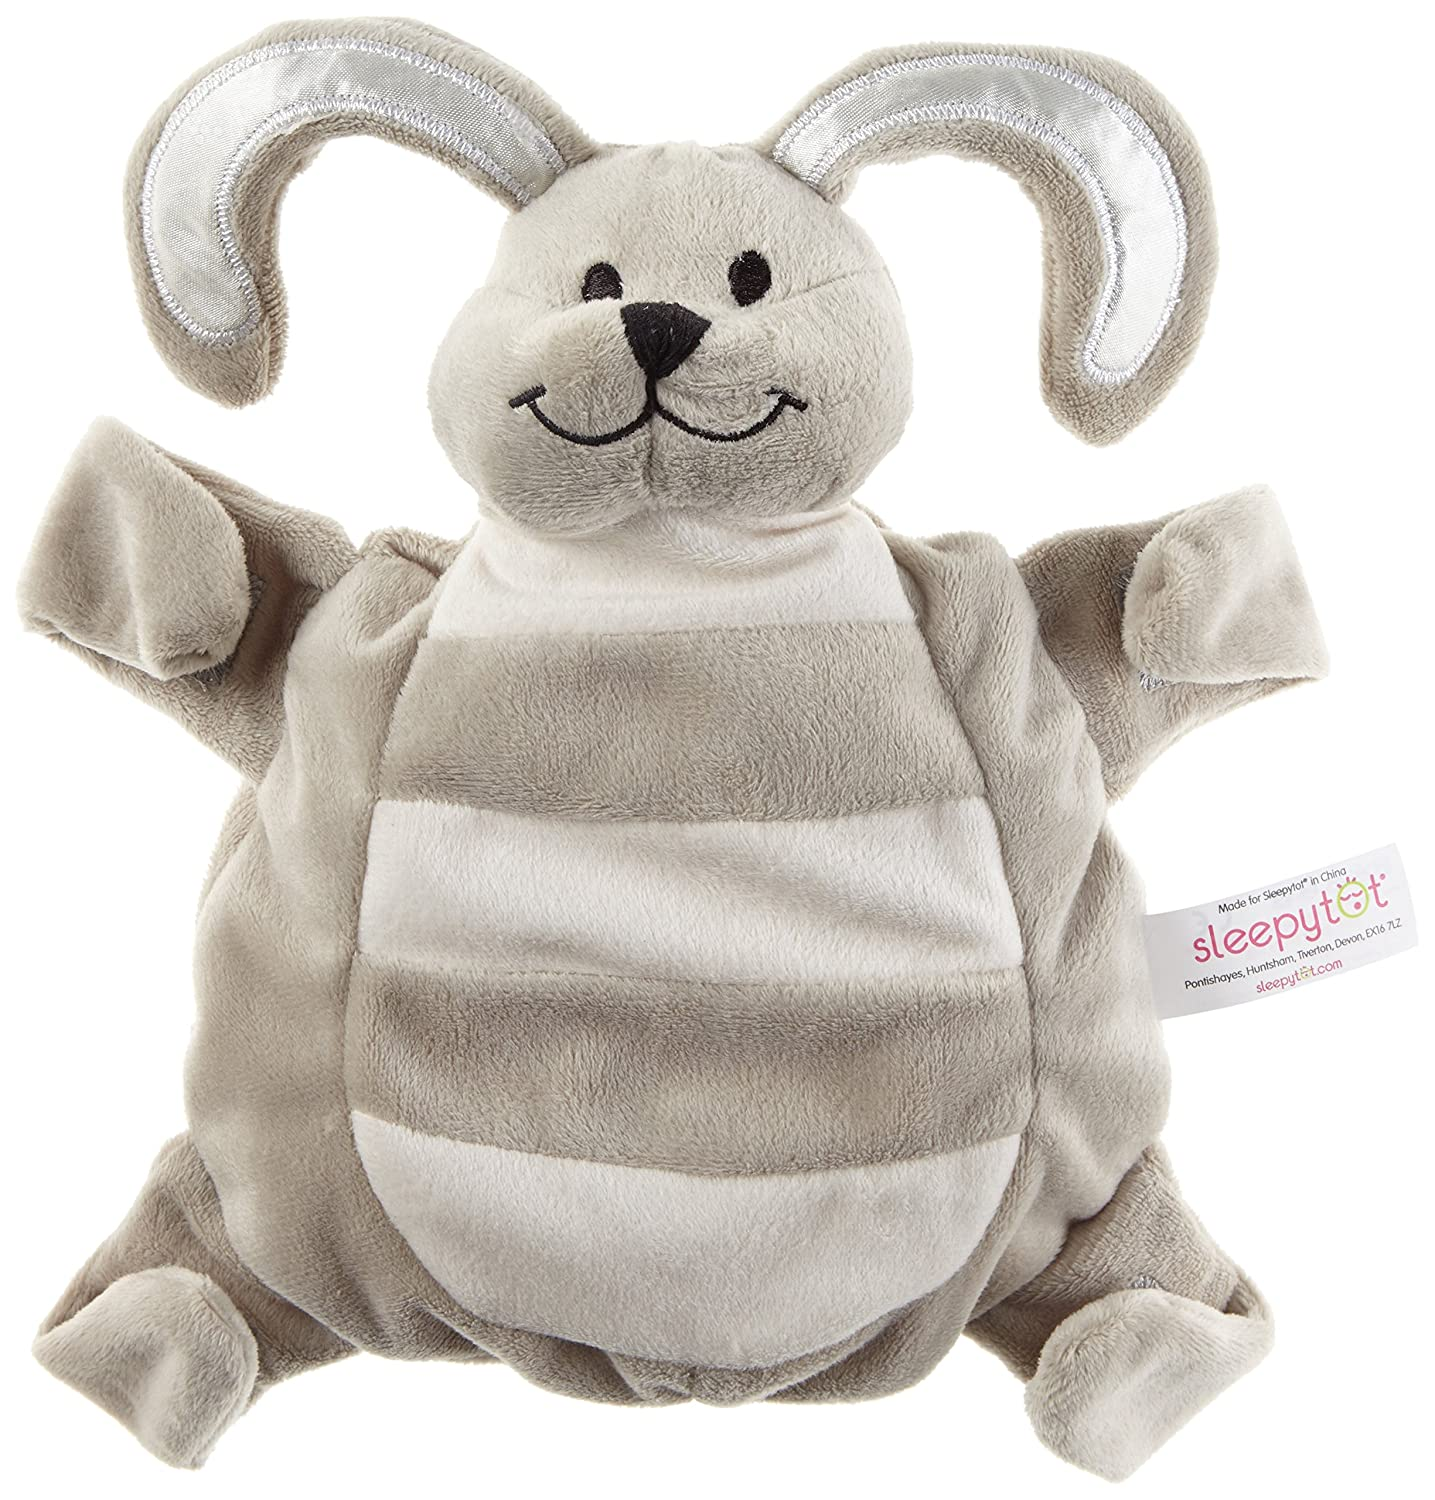 Sleepytot Bunny Comforter and Soother Holder, Baby Sleep Aid Attachable in Grey Sleepytot.com SLE101-GREY